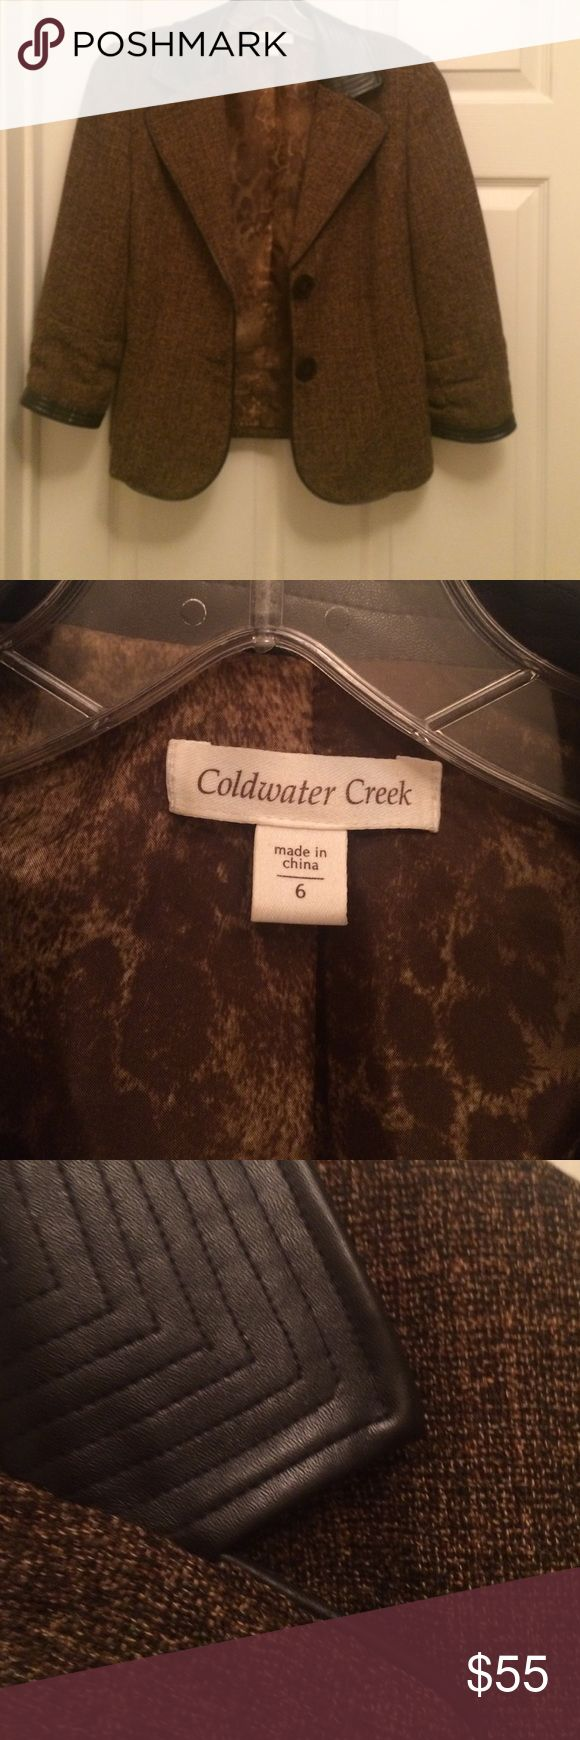 Two button brown tweed blazer Brown tweed blazer with leather color Coldwater Creek Jackets & Coats Blazers